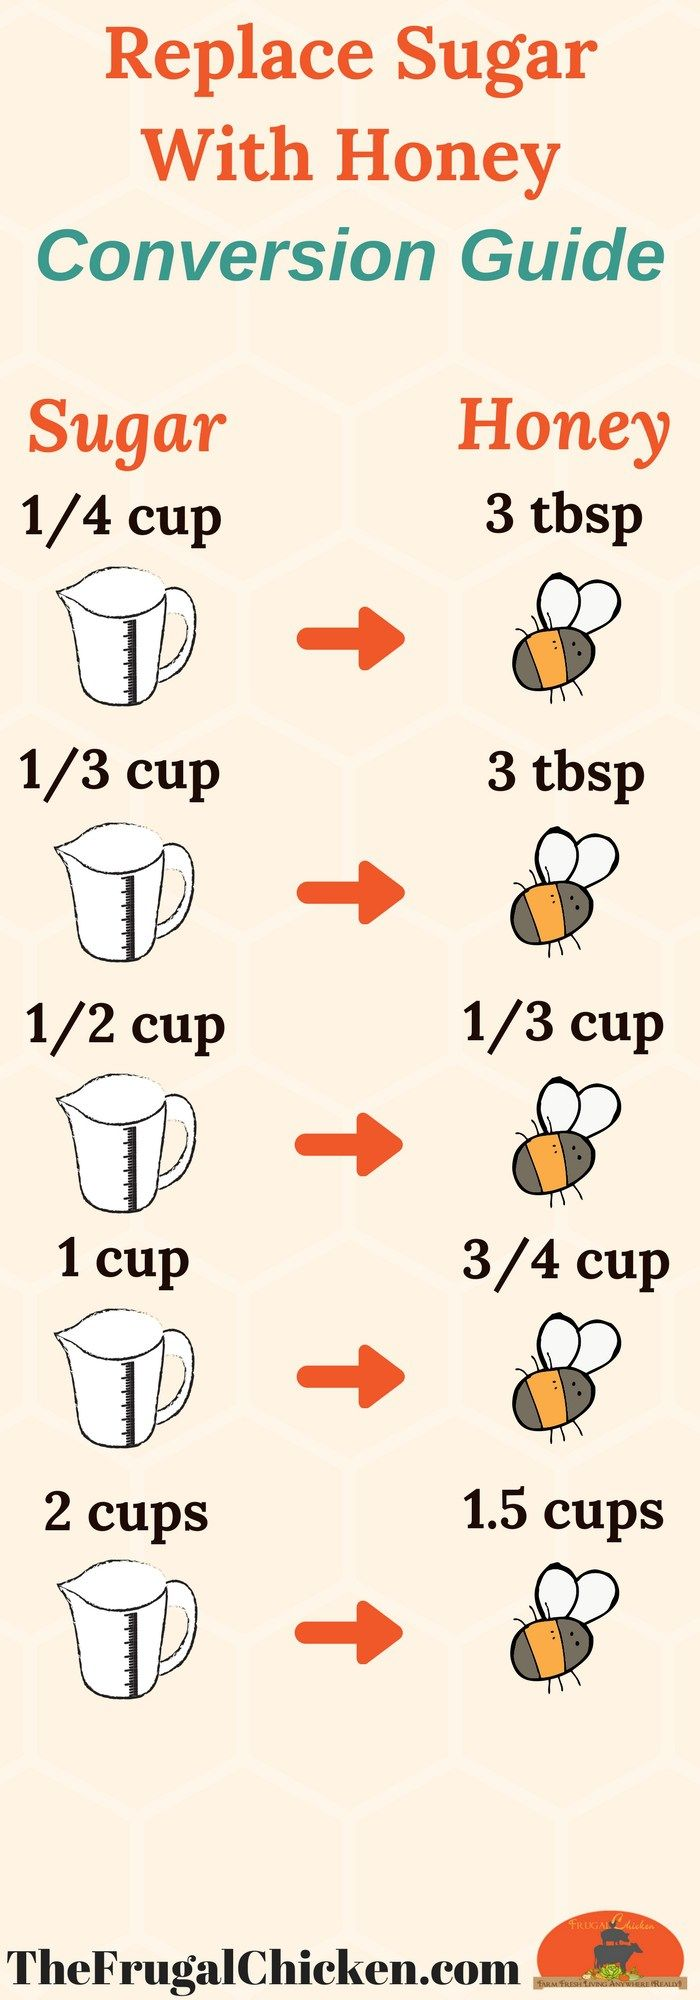 Get rid of the refined sugar and use honey in your best baking recipes instead! You also need to use baking soda, so click through to the article so you know how much to use!